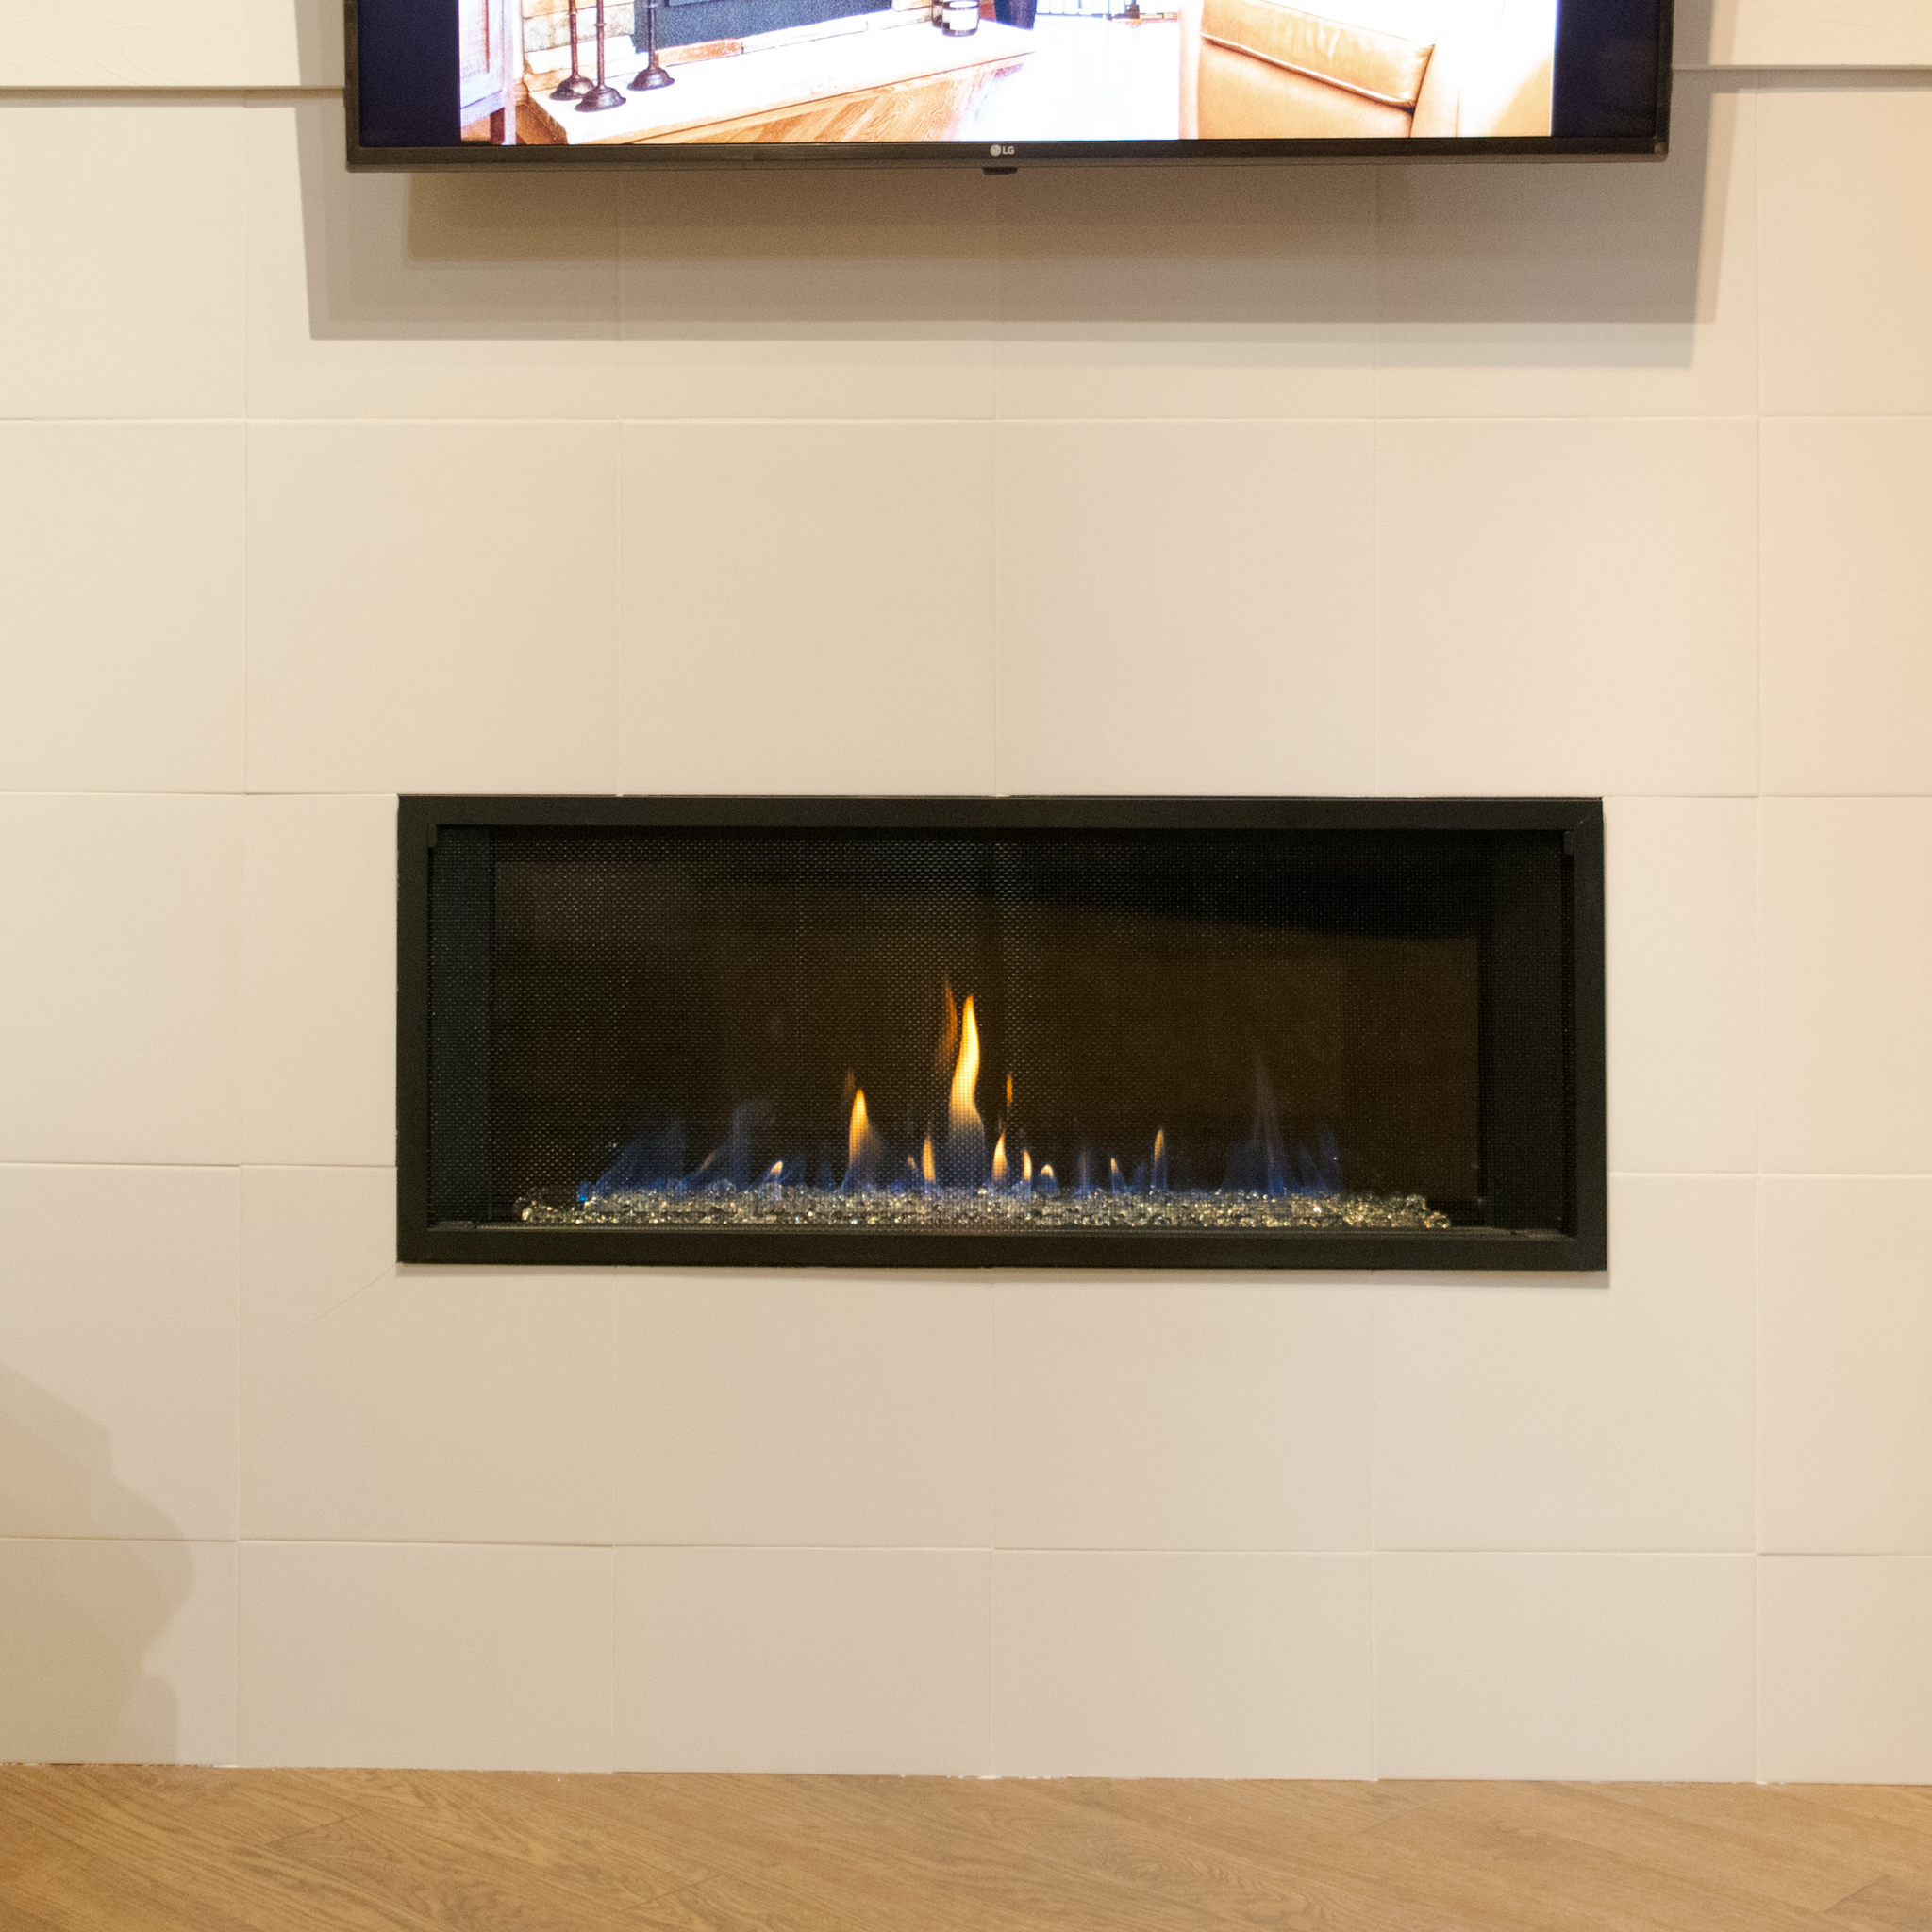 """Valor L1 - ‧ Direct Vent Gas Fireplace - 30,000 BTU‧ Reflective Glass Firebox Panel‧ 1"""" Black Finishing Trim‧ Decorative Glass Burner Media‧ Heat Shift System - TV over fireplace!‧ Maxitrol Remote Control‧ Fan – Not included‧ Strong heater‧ Variety of Media options‧ Contemporary Linear Fireplace"""